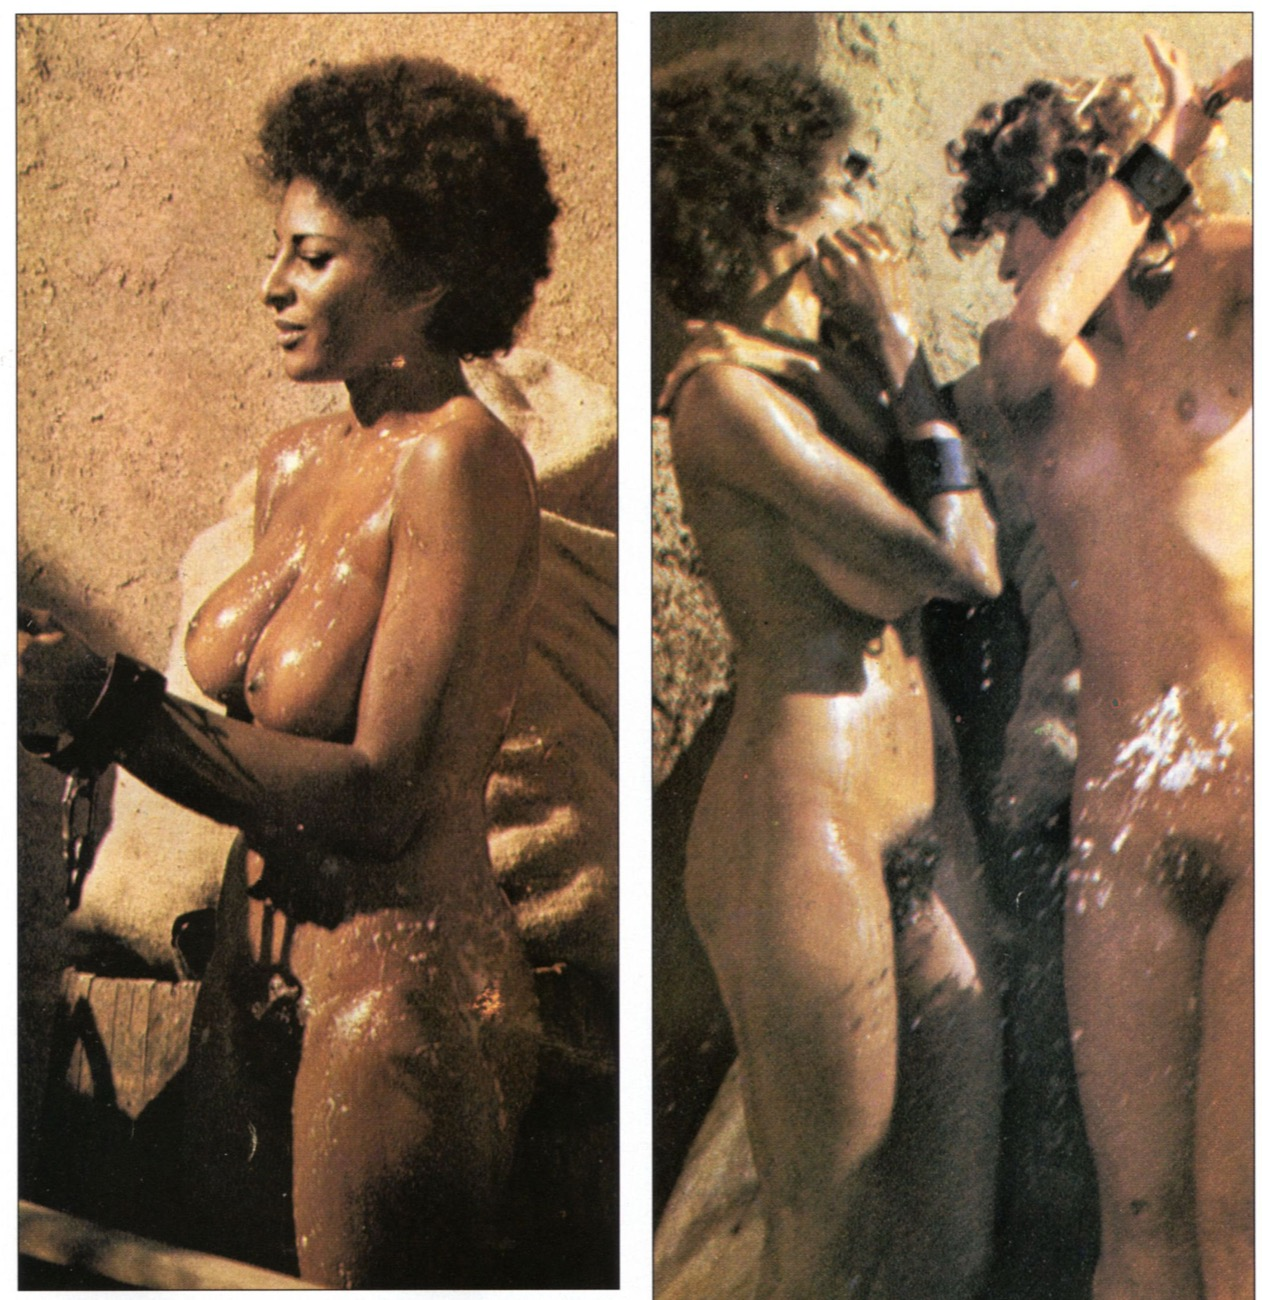 Pam Grier Nude Is Still Pretty Mind Blowing, Right